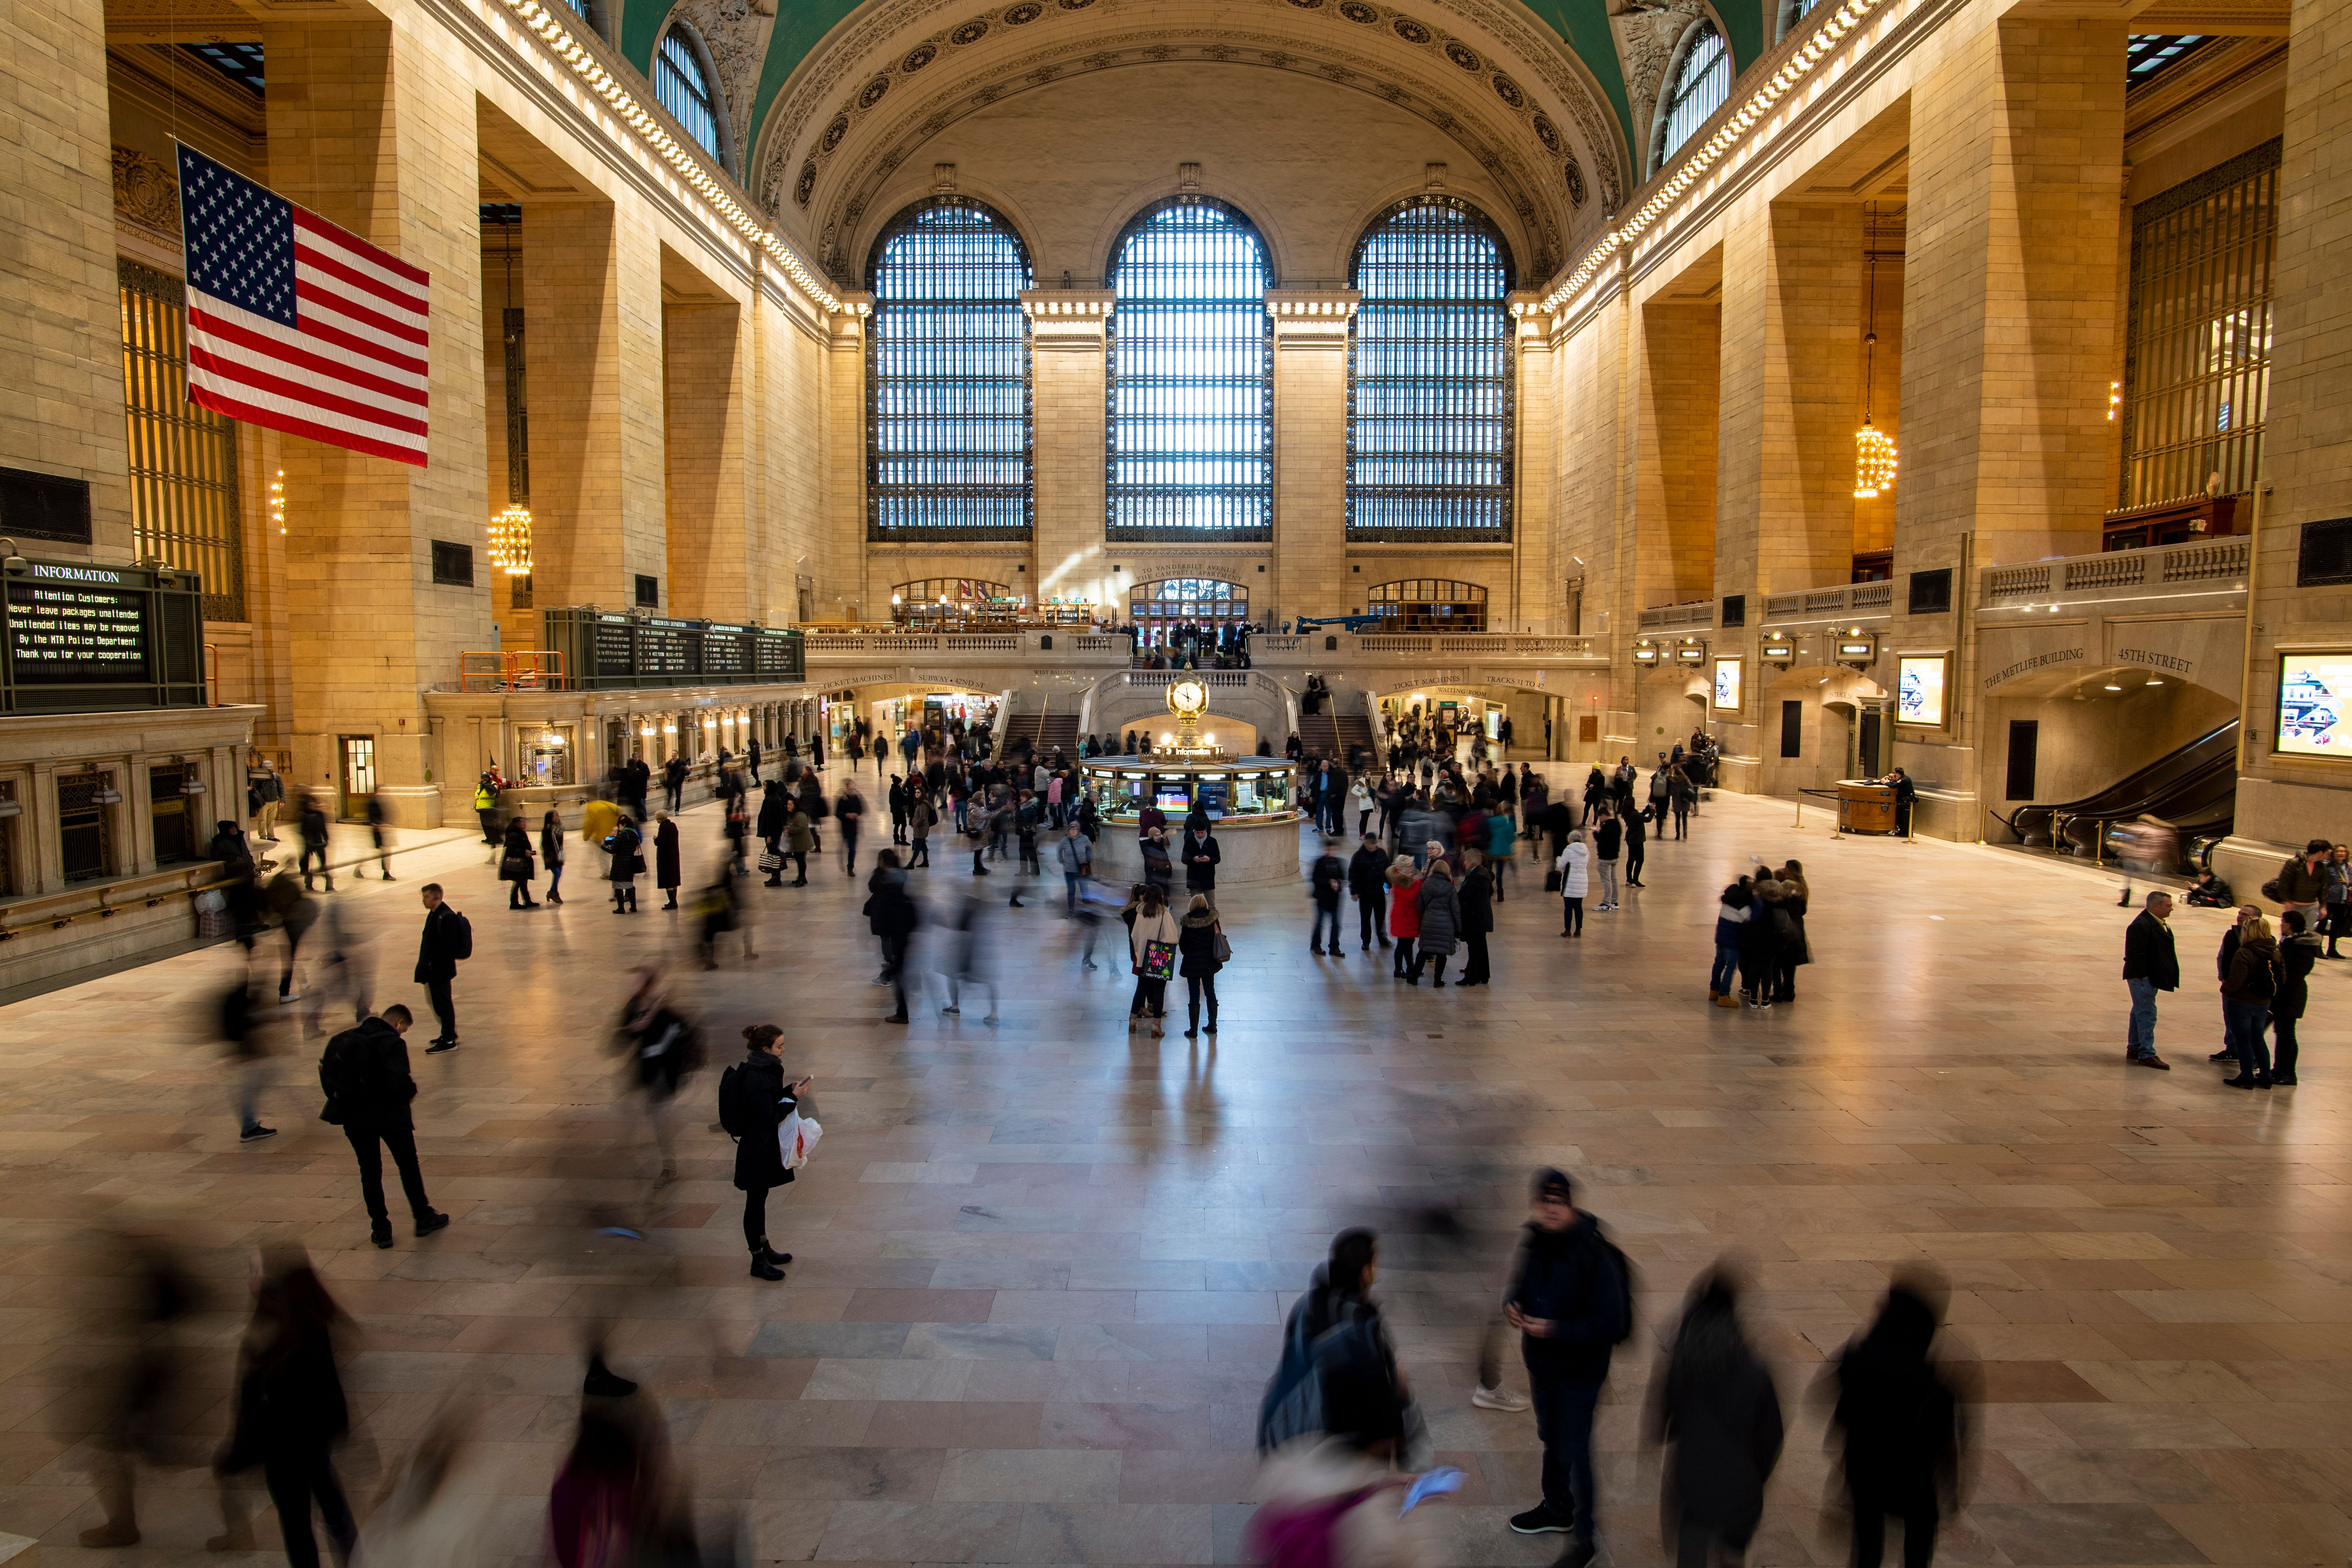 A high-ceilinged interior of a train station with large windows and crowds of people walking across the main concourse. A large American flag hangs on the left wall.